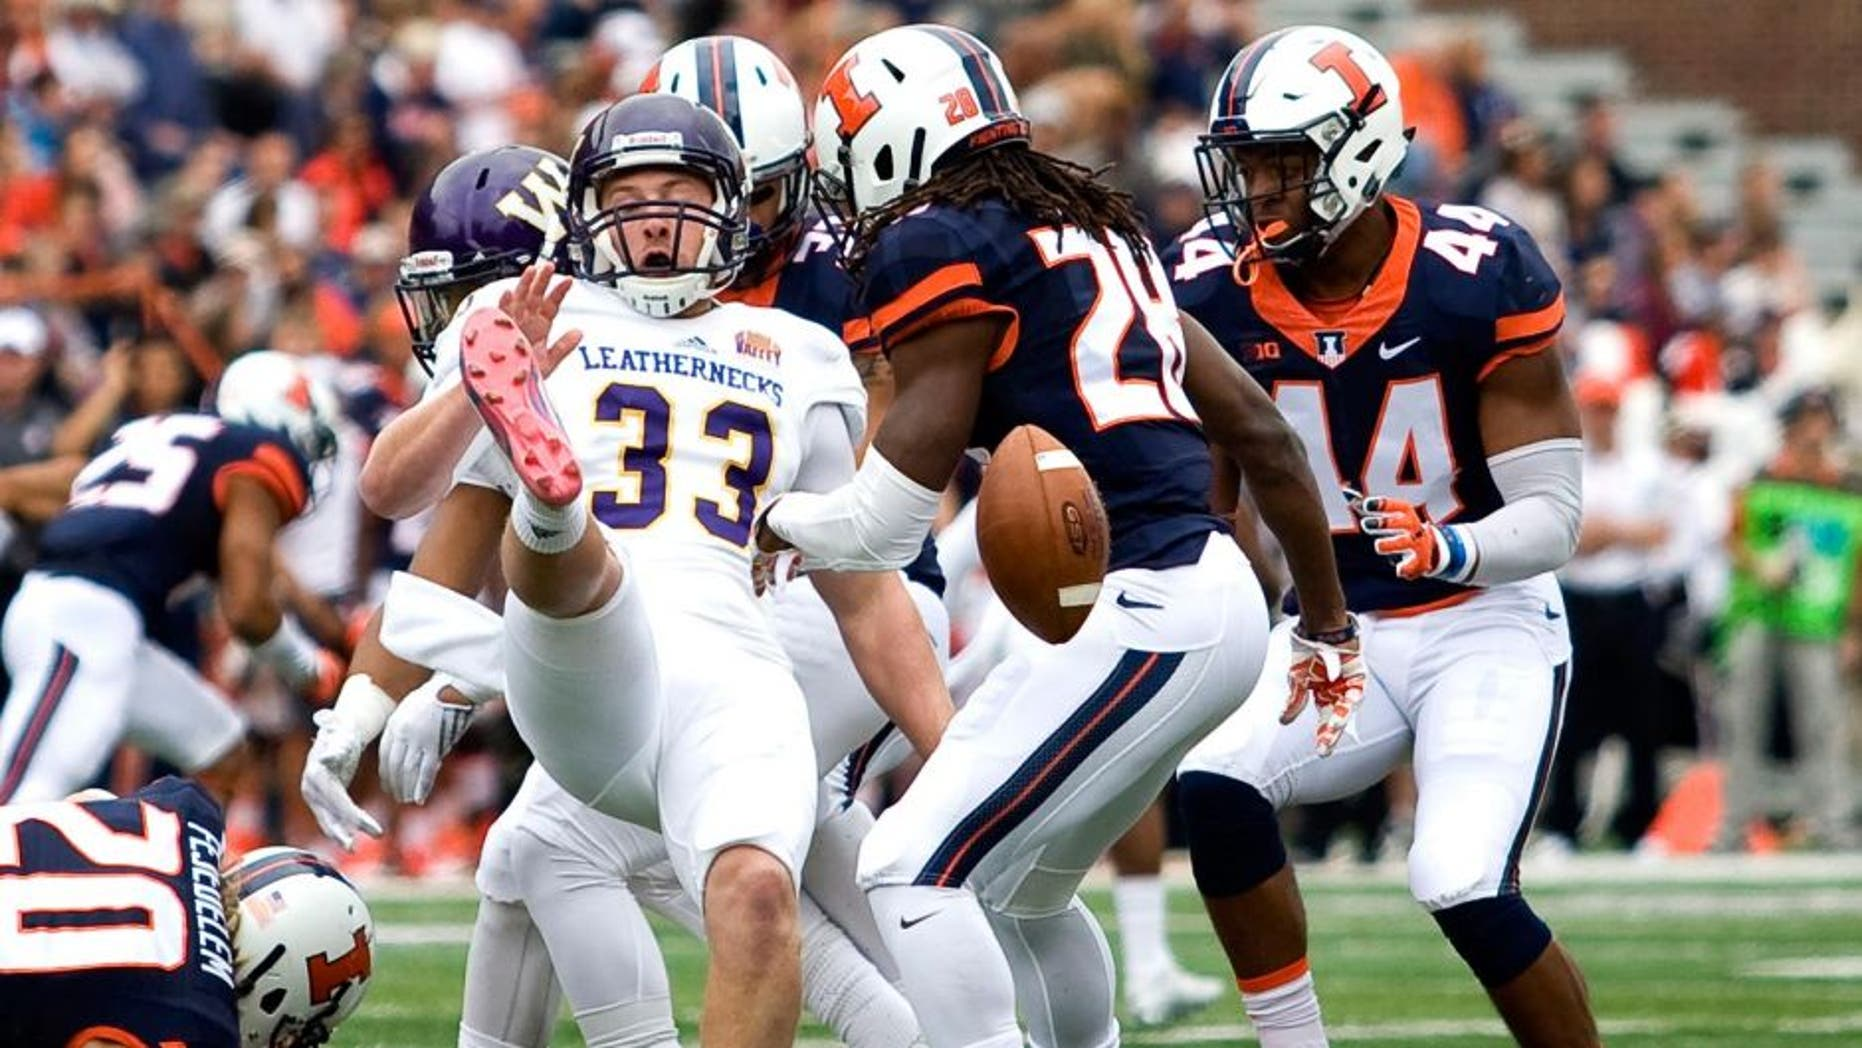 Sep 12, 2015; Champaign, IL, USA; Illinois Fighting Illini defensive back Jaylen Dunlap (28) blocks the punt from Western Illinois Leathernecks place kicker Nathan Knuffman (33) which was run back for a touchdown by Illinois Fighting Illini wide receiver Marchie Murdock (not pictured) at Memorial Stadium. Mandatory Credit: Mike Granse-USA TODAY Sports